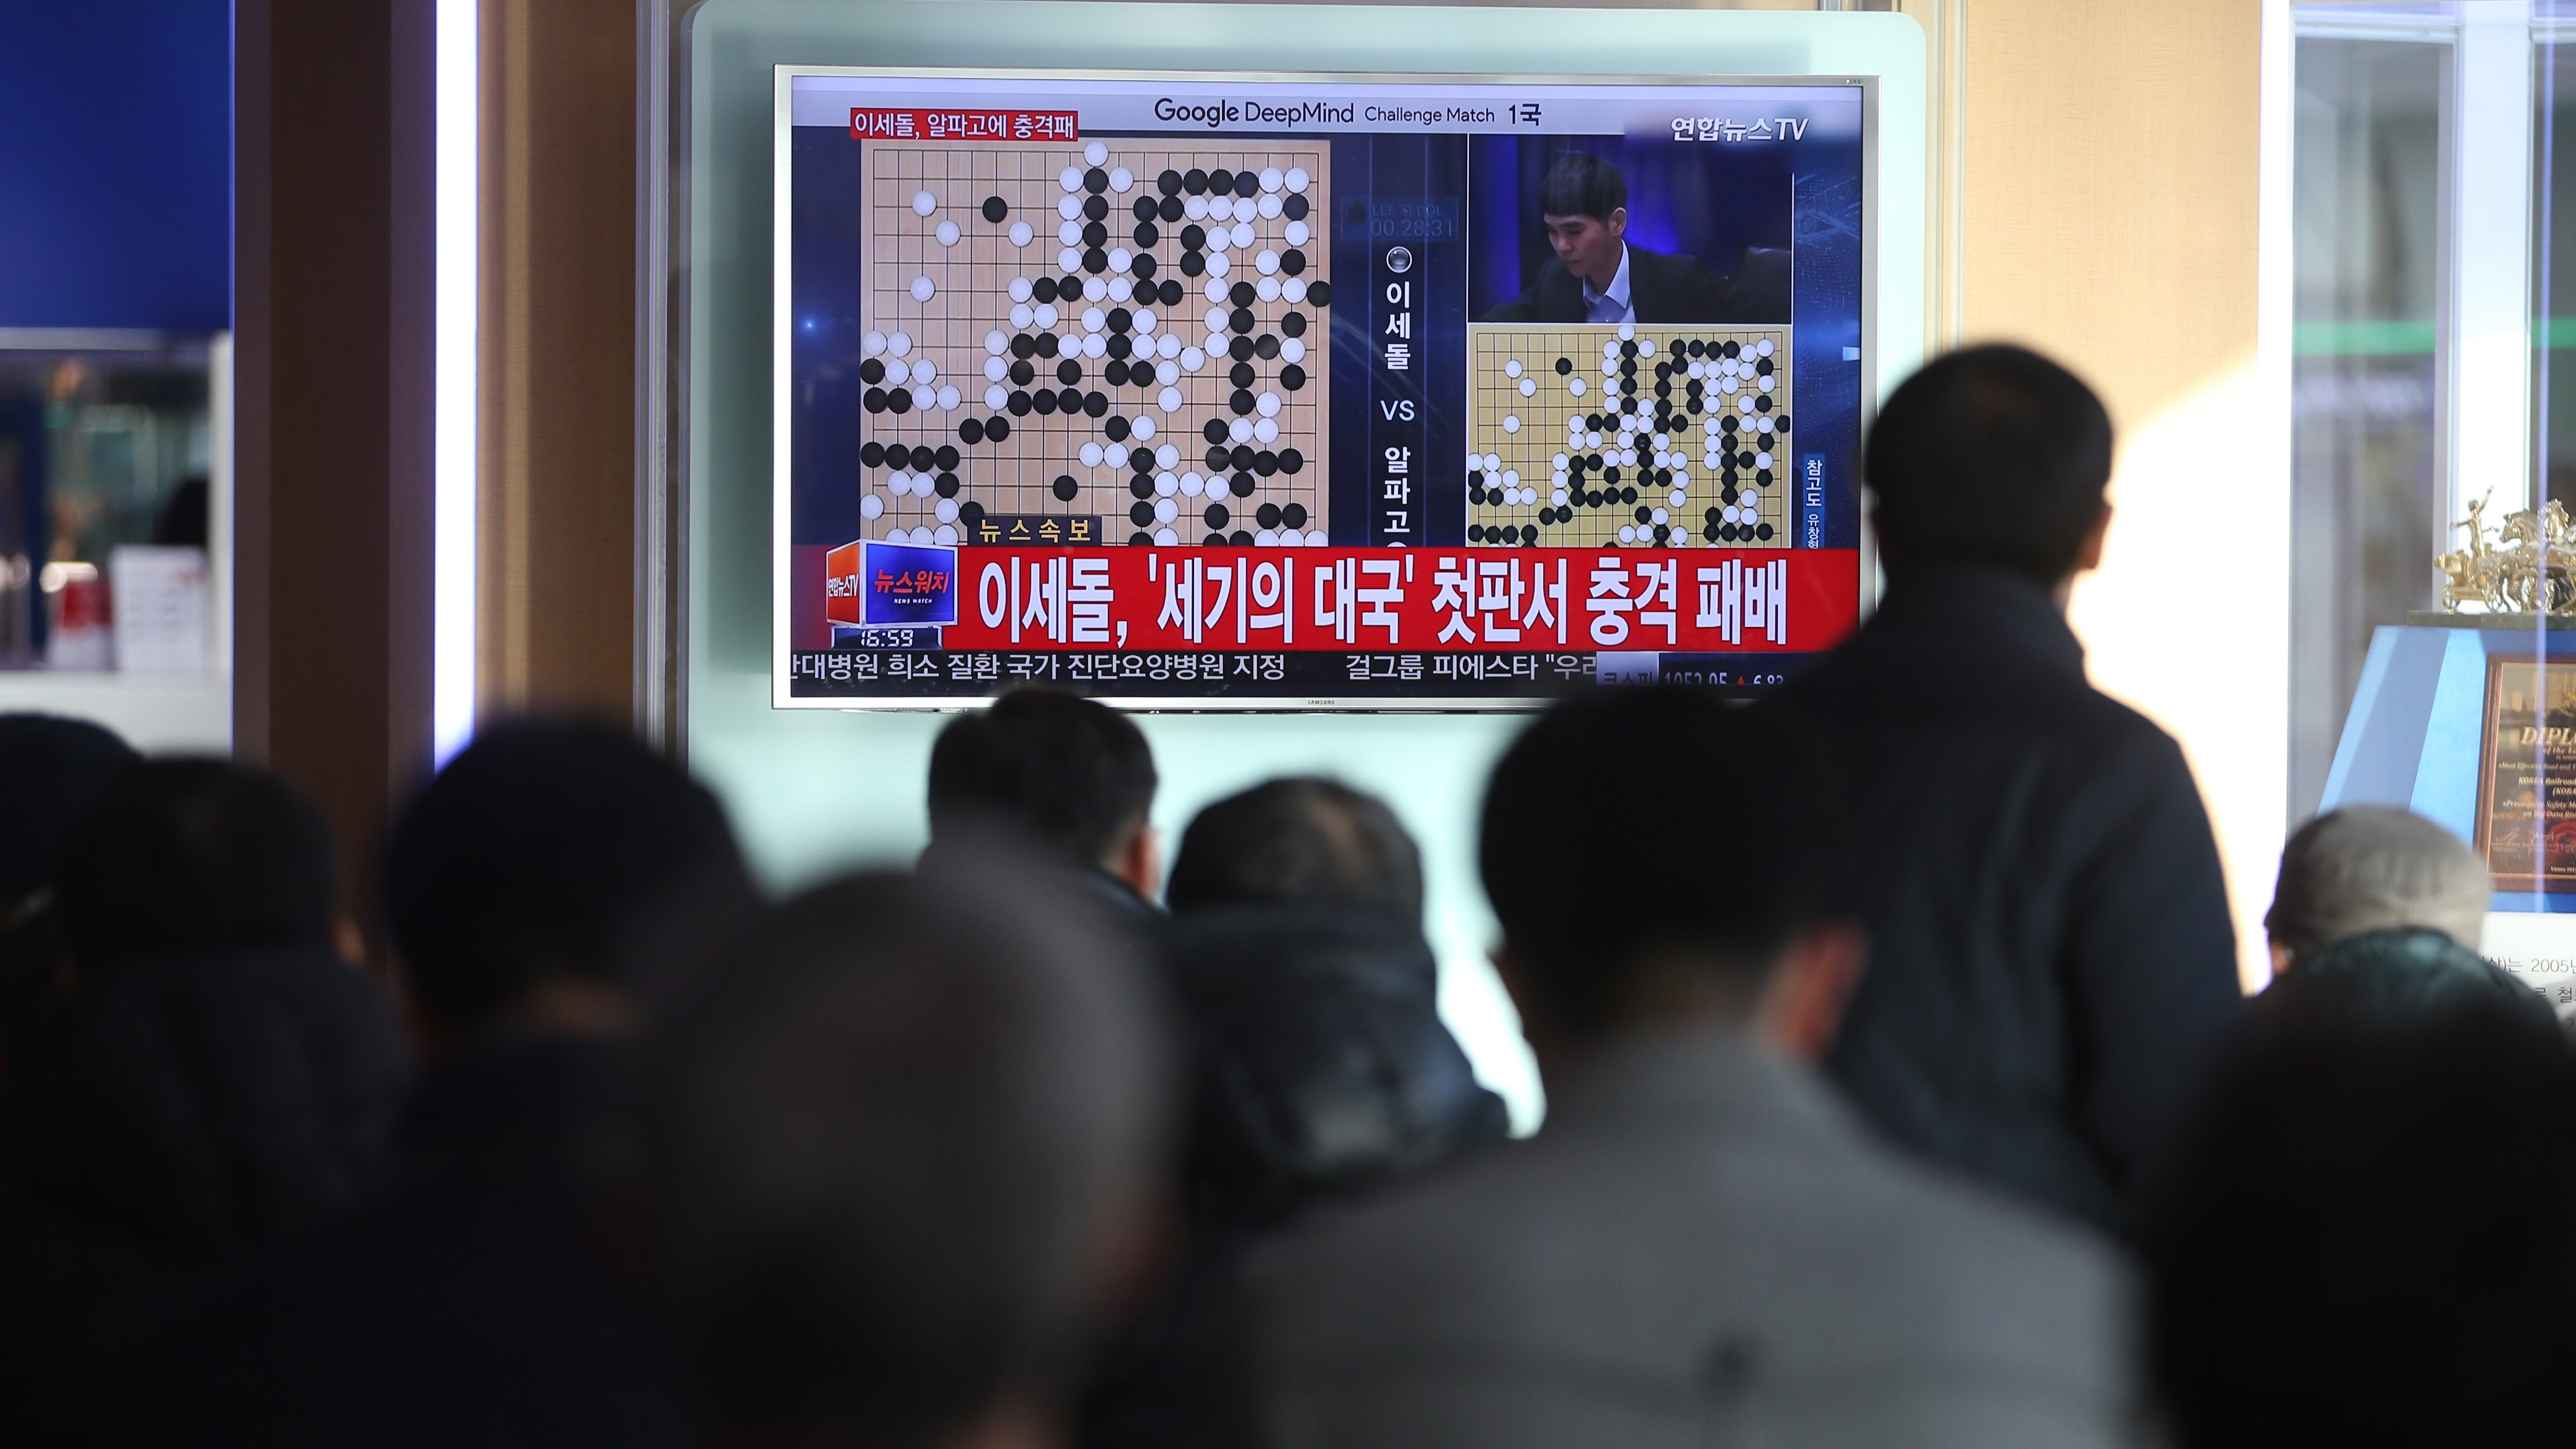 epa05202304 People watch coverage of Go grandmaster Lee Se-dol's loss to the Google-developed artificial intelligence AlphaGo in the first match of the best-of-five series in Seoul, South Korea, 09 March 2016. One of Google's top computer programmes squared off against a human opponent for a five-round match of the boardgame Go on 09 March, in the latest development to pit artificial intelligence against human ingenuity.